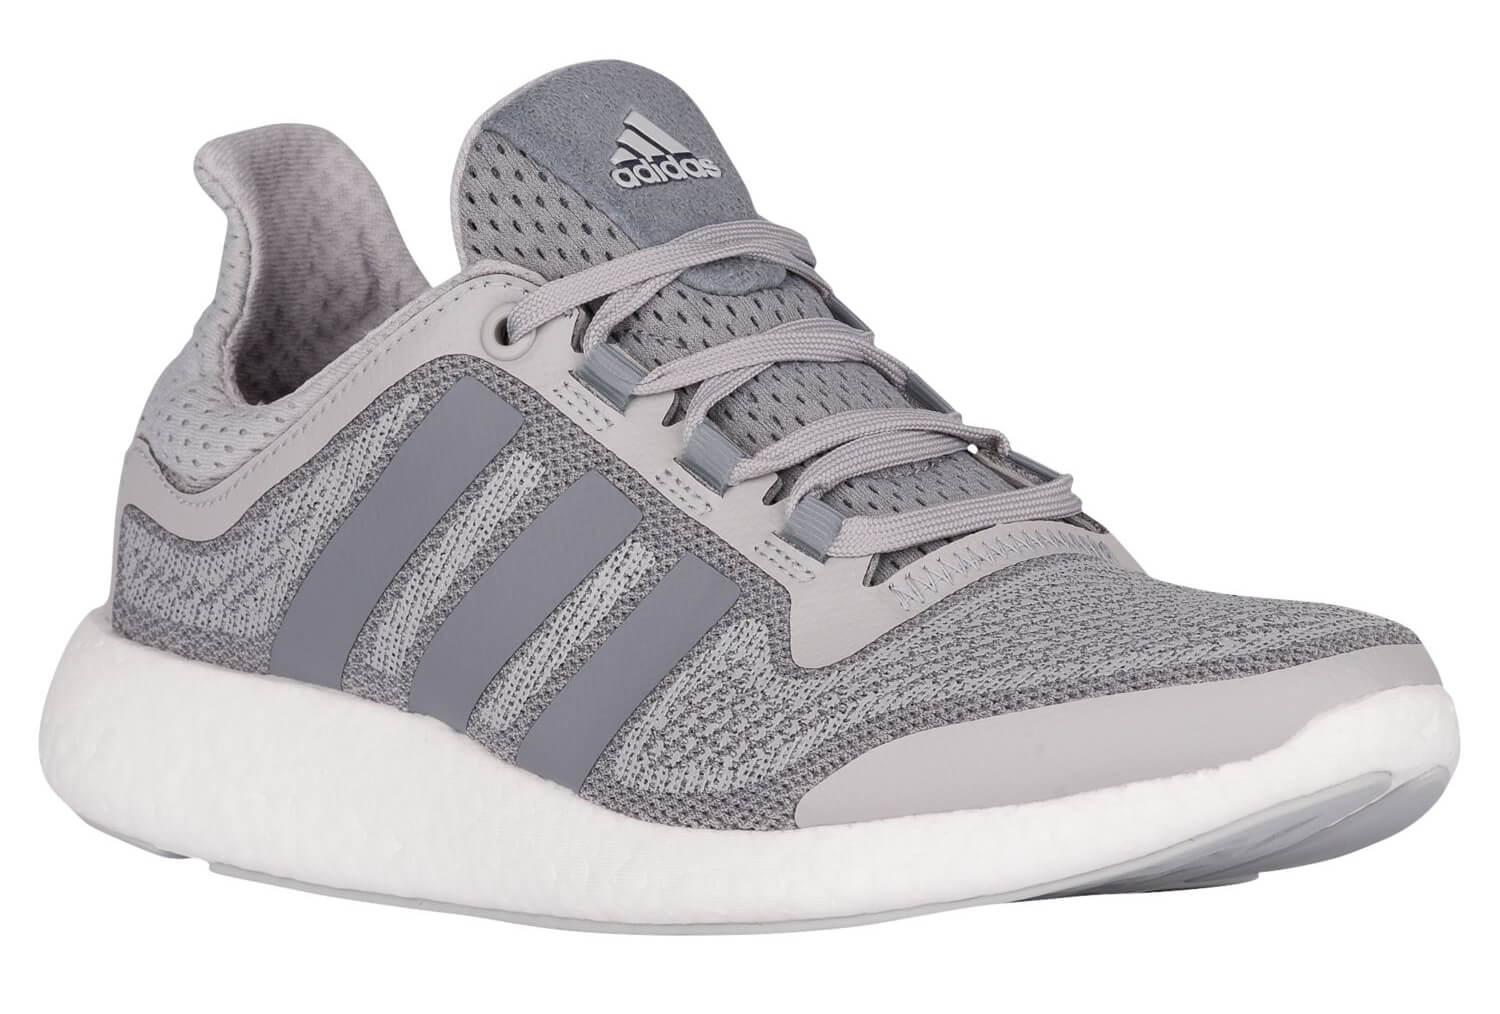 Pure Boost Trainers for Men